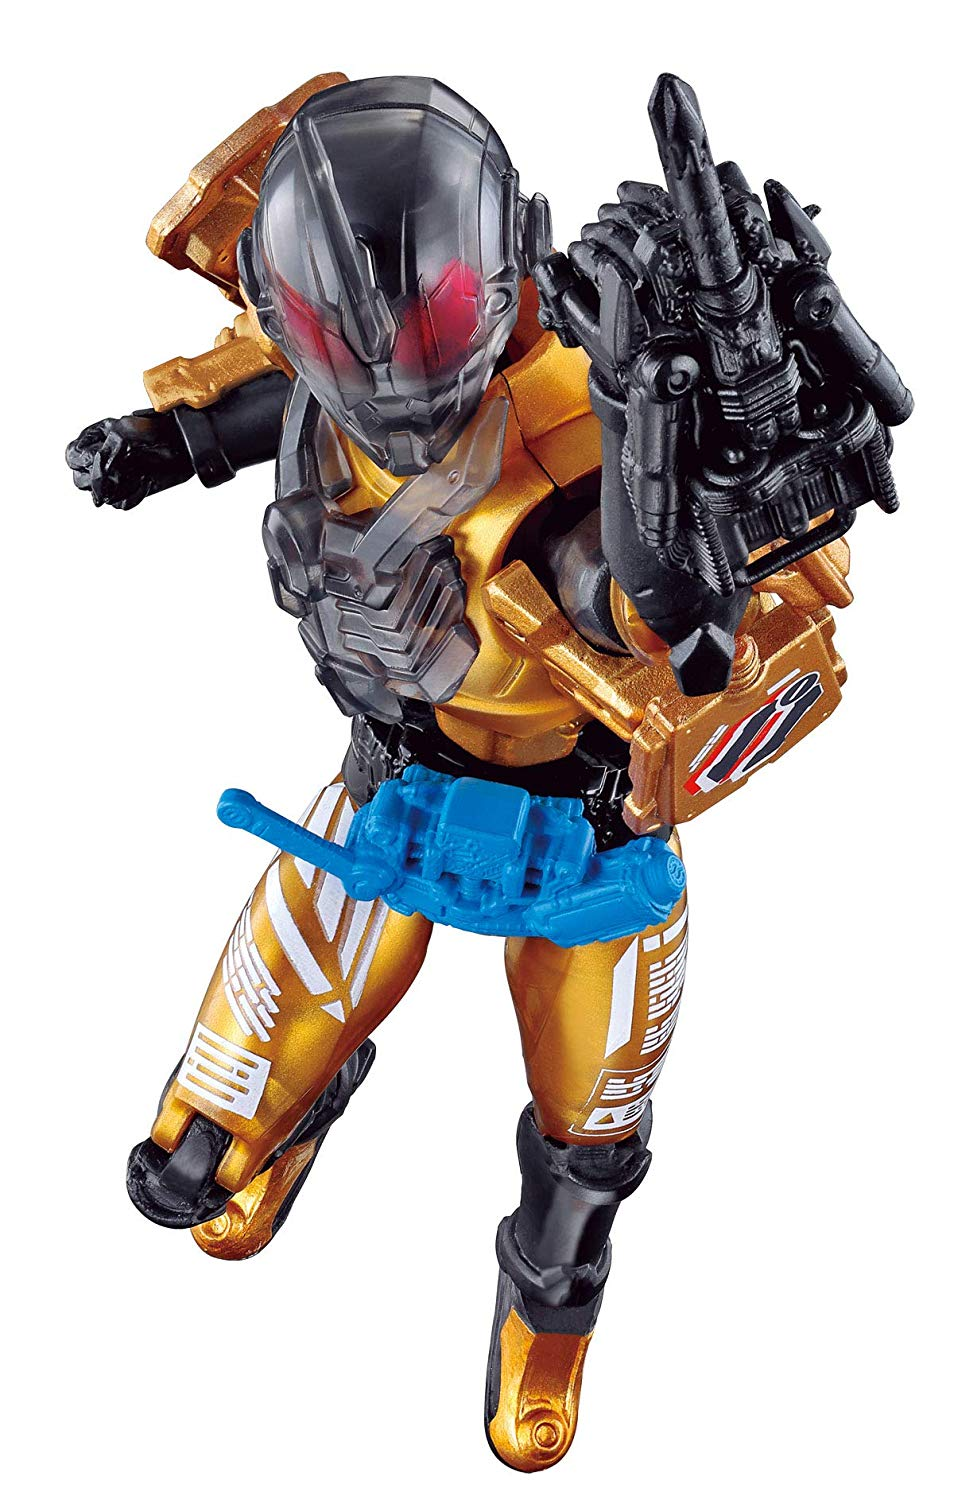 RKF RIDER KICK'S FIGURE 仮面ライダーグリス